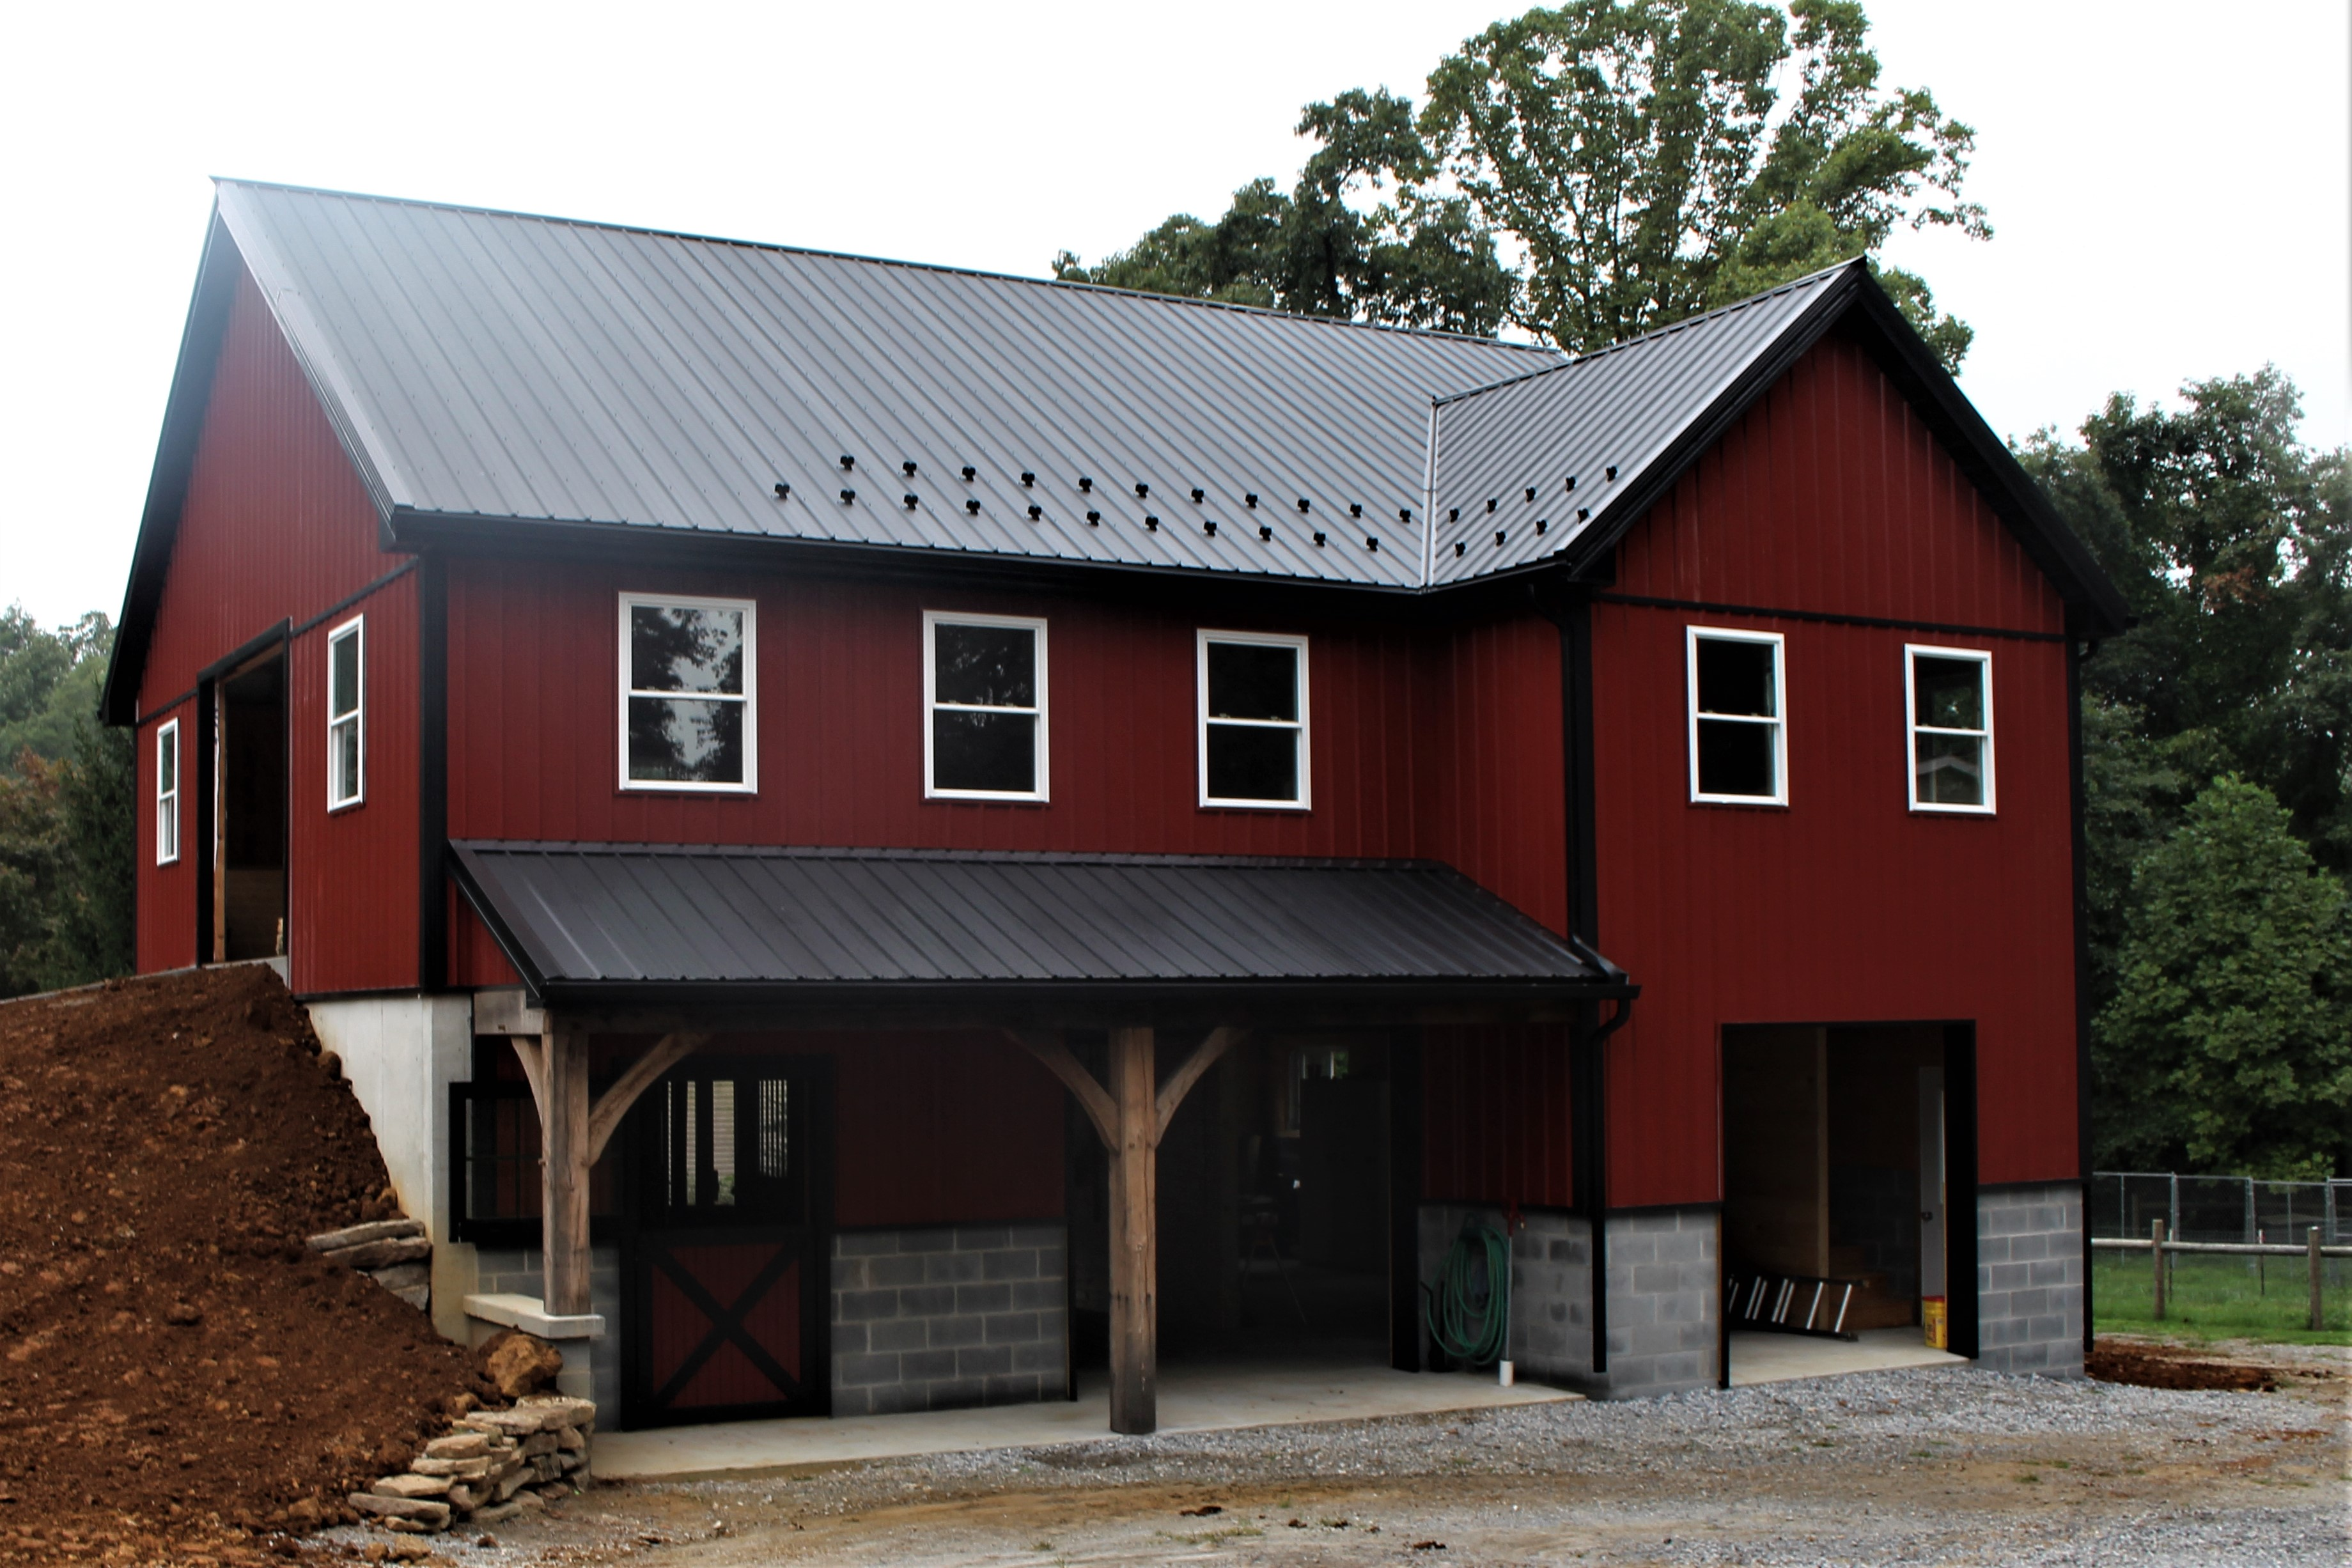 Tan Sidewalls, Charcoal Roof And Trim On 2 Story Barn